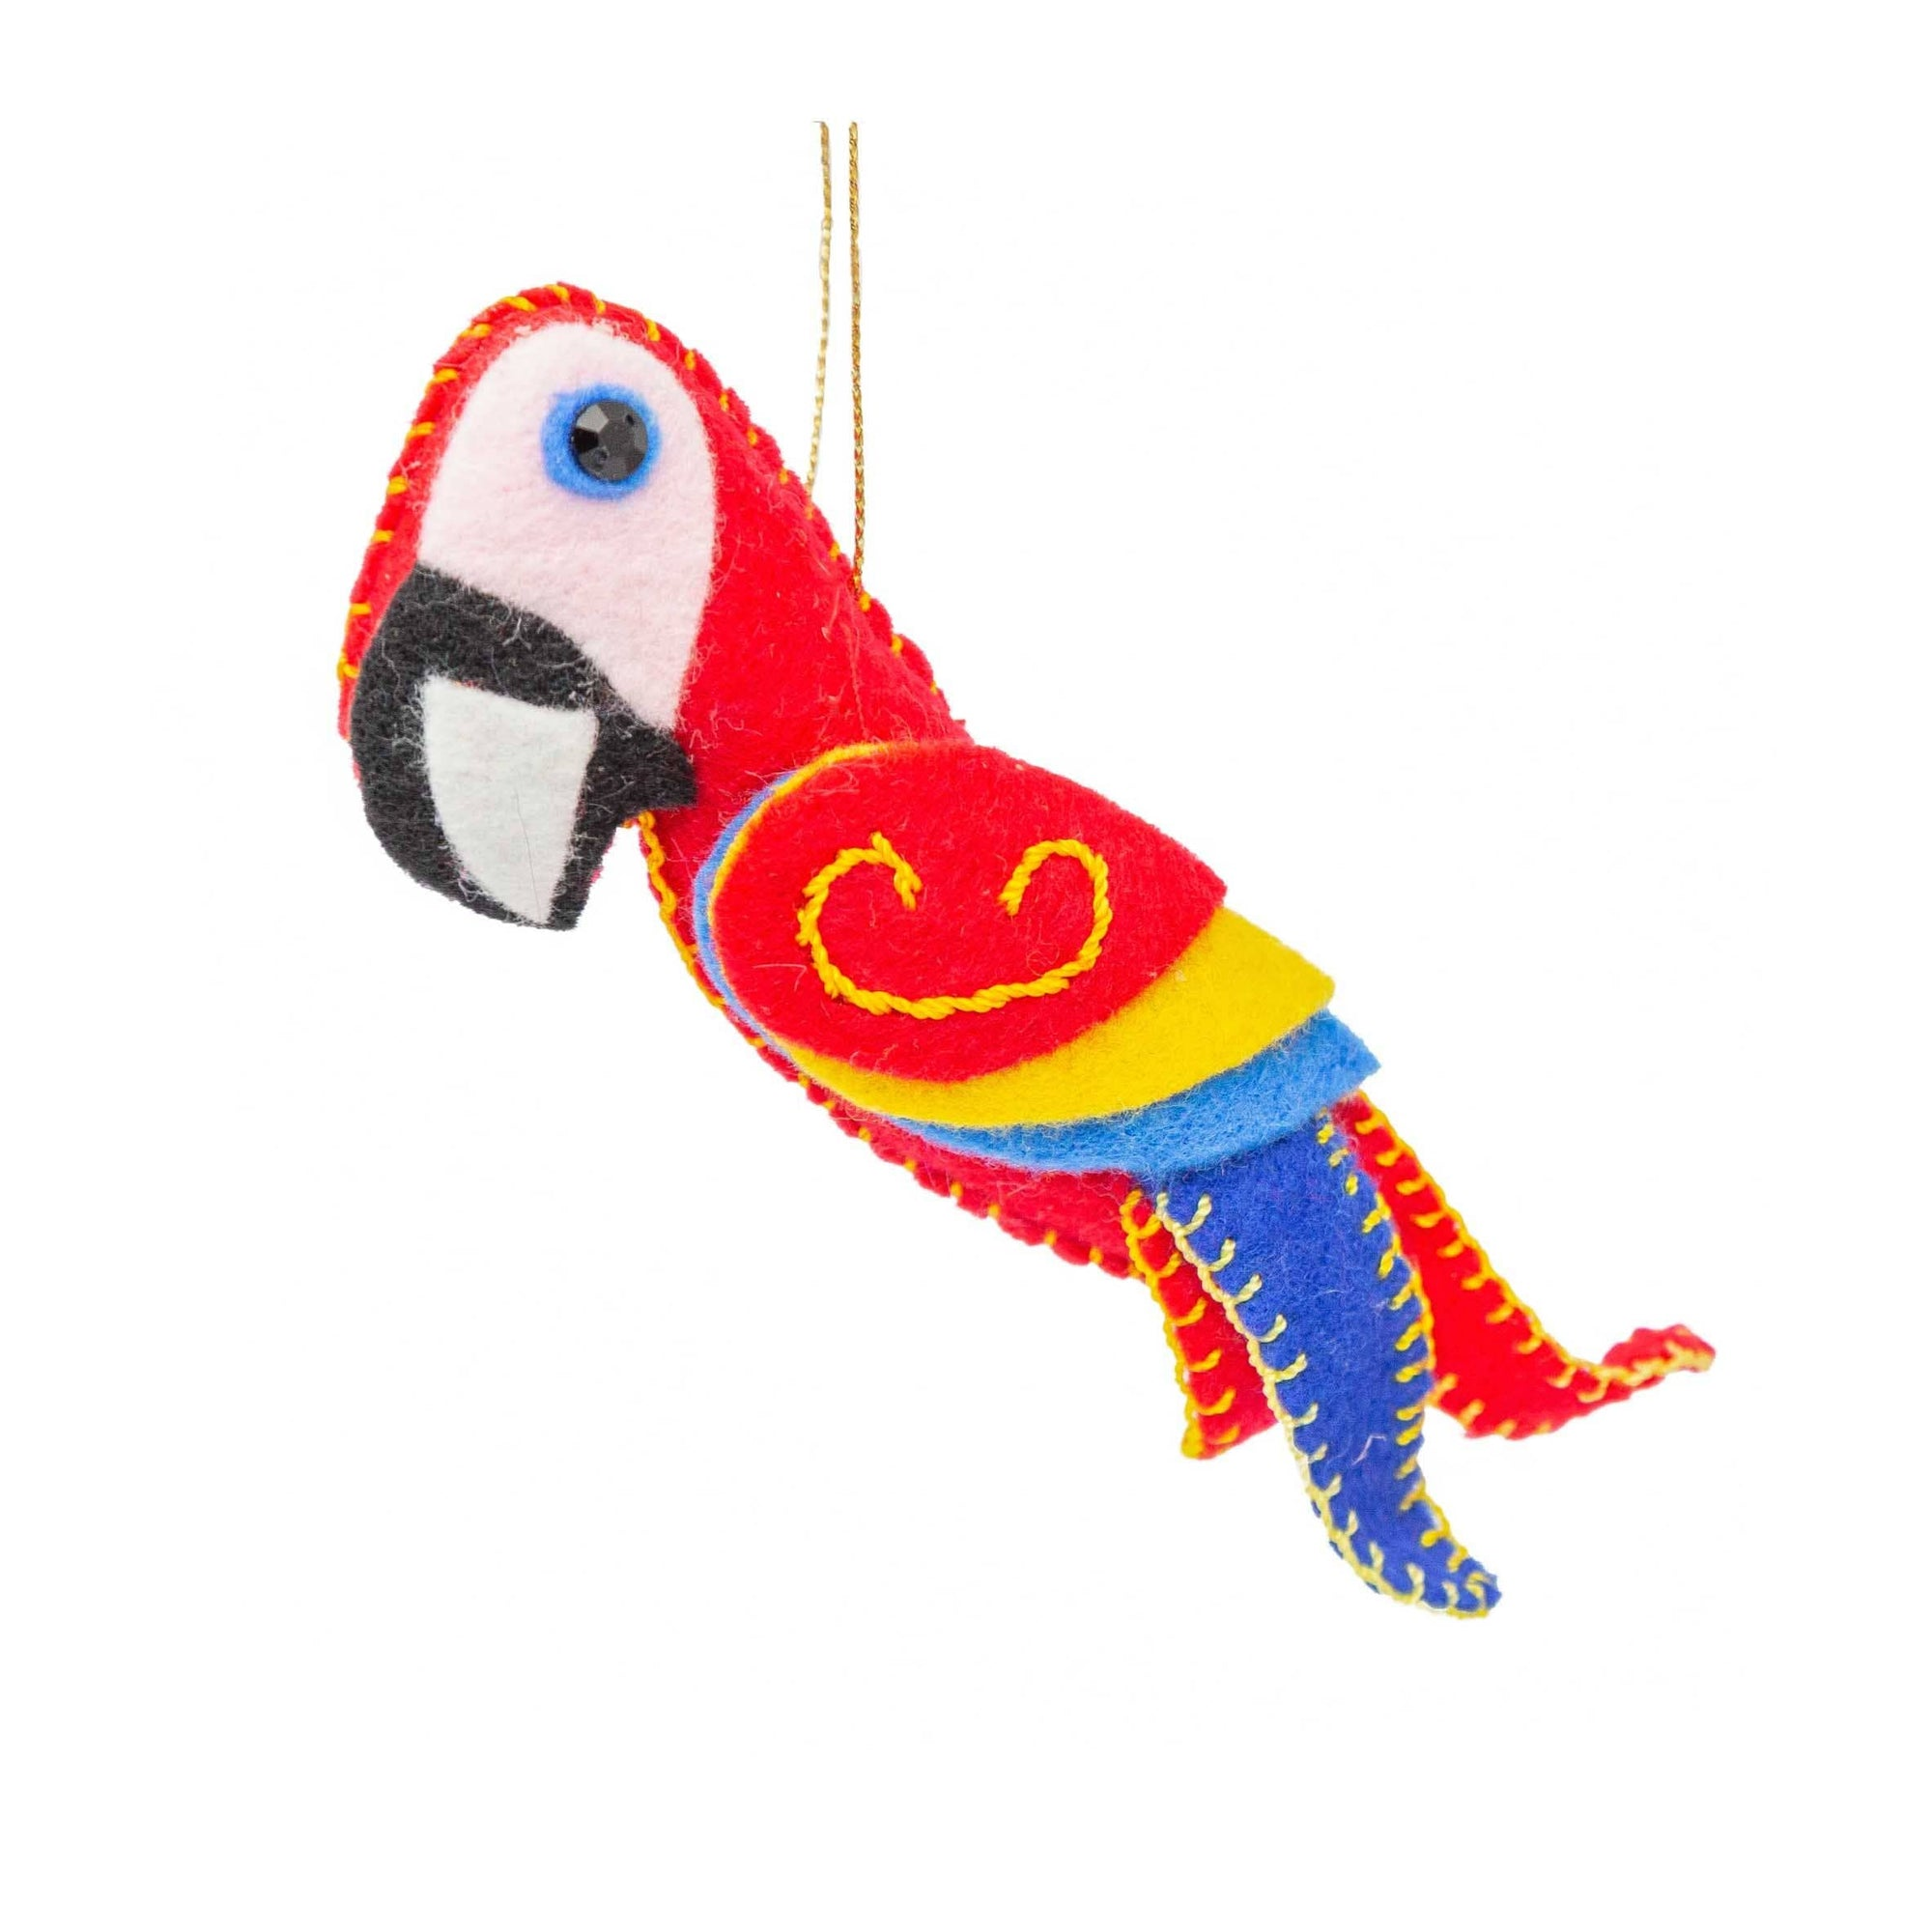 Felt Red Macaw Ornament